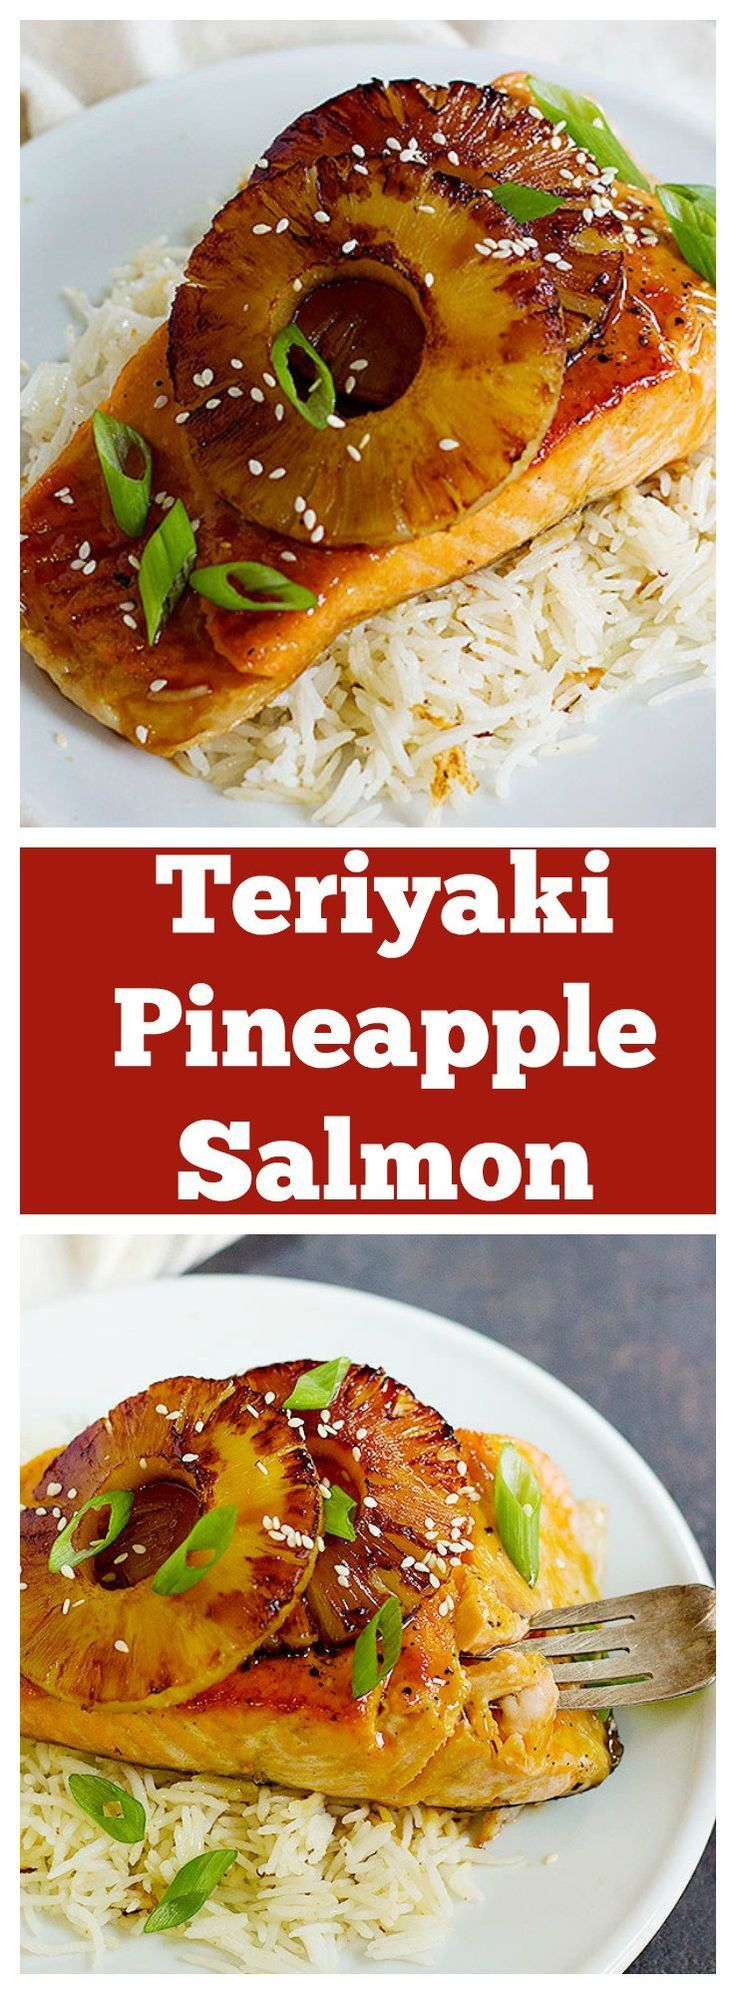 awesome Give your usual seafood recipe a great twist with this teriyaki pineapple salmon...